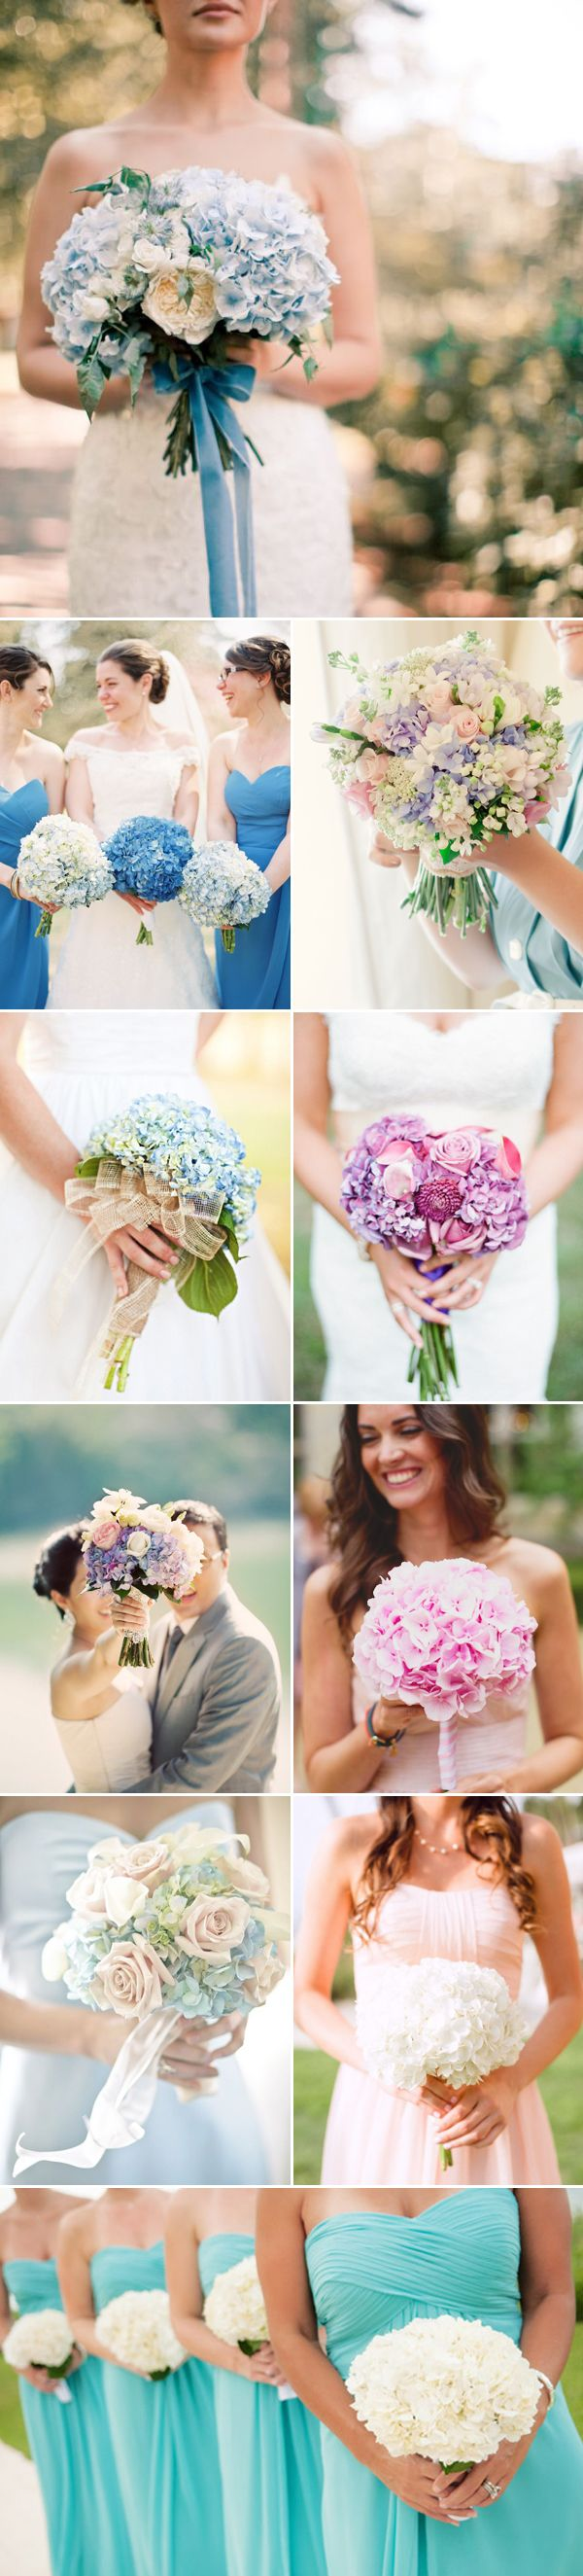 hydrangea wedding ideas - hydrangea wedding bouquet / http://www.deerpearlflowers.com/72-unique-and-gorgeous-ideas-for-wedding-bouquets/